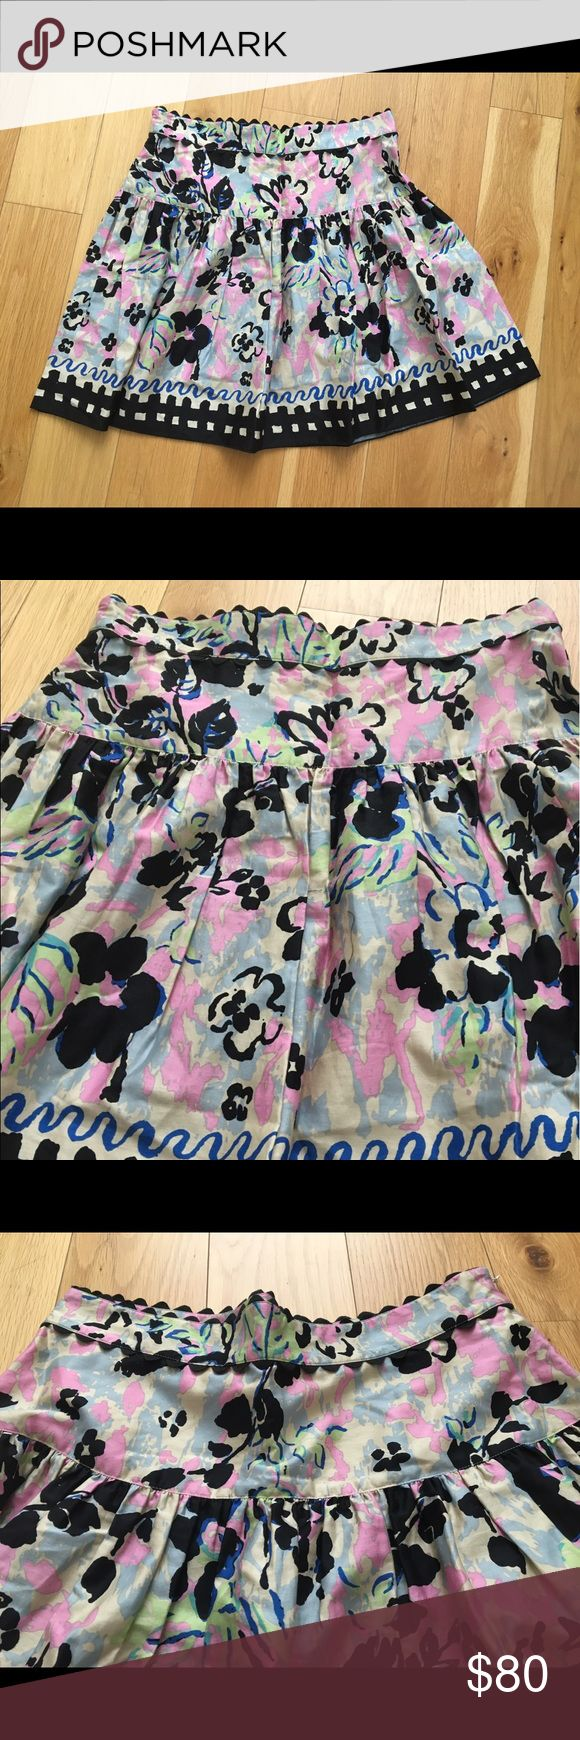 Anna Sui skirt It's size 12 , waist 32 inches, length 20 inches Anna Sui Skirts Midi